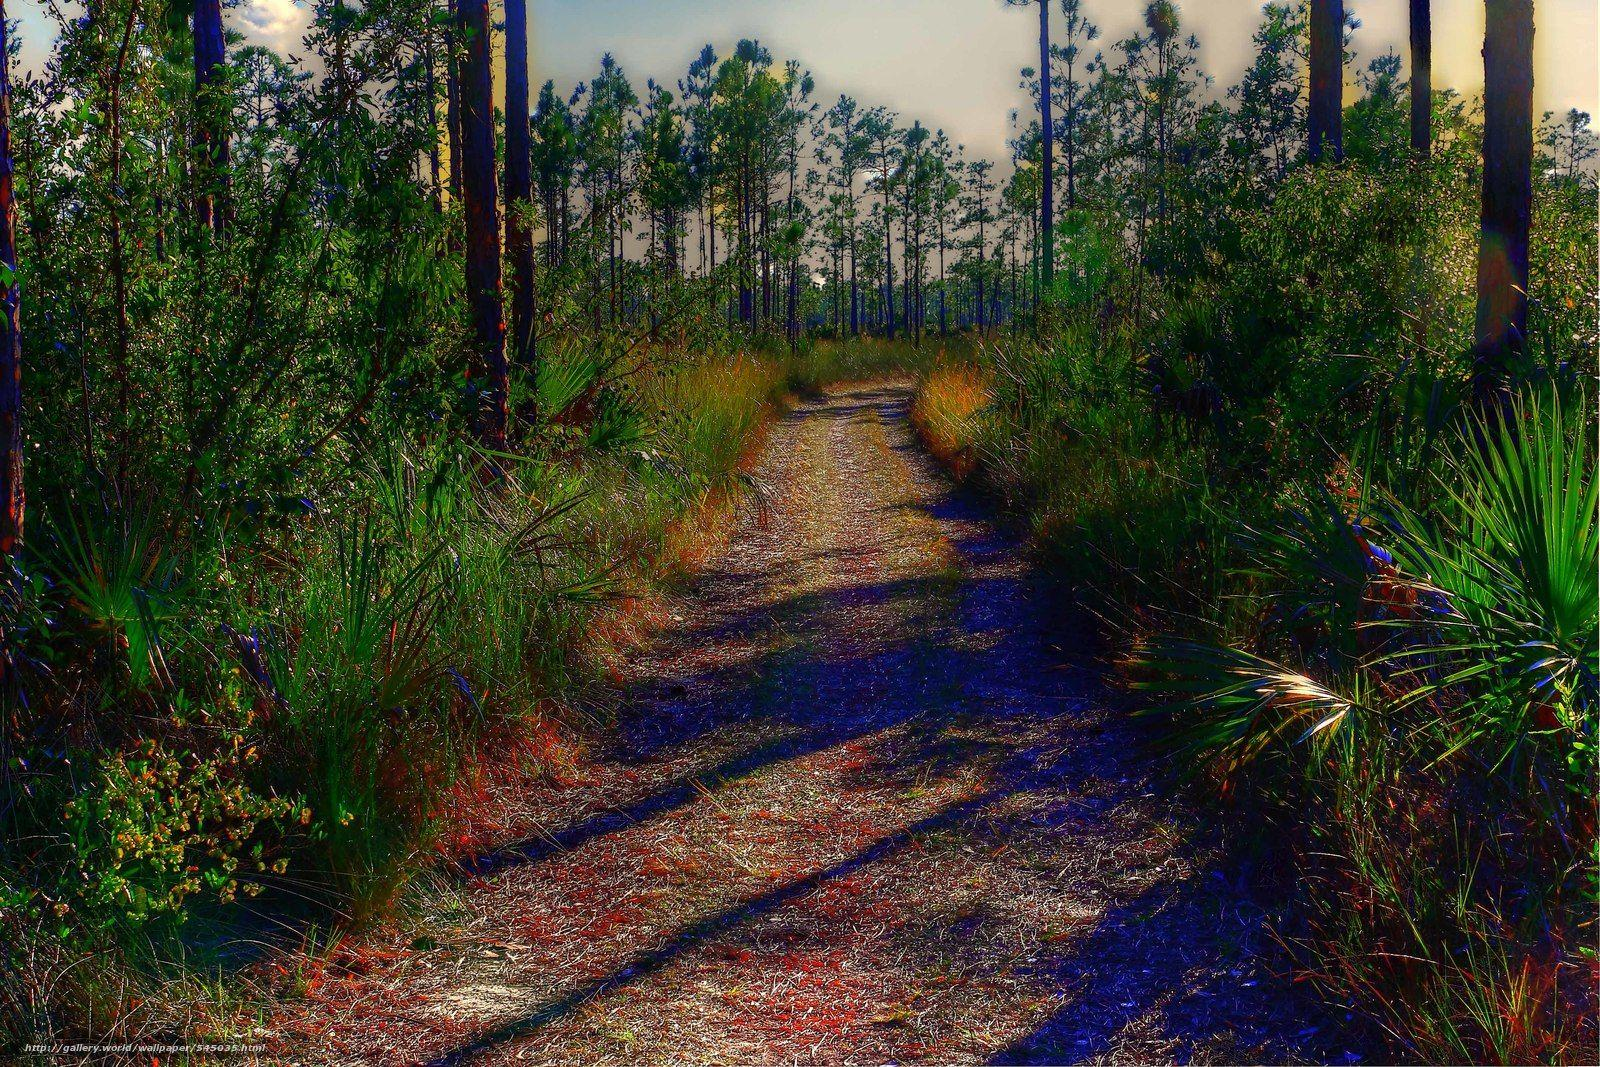 Download wallpapers everglades national park, florida, road, trees